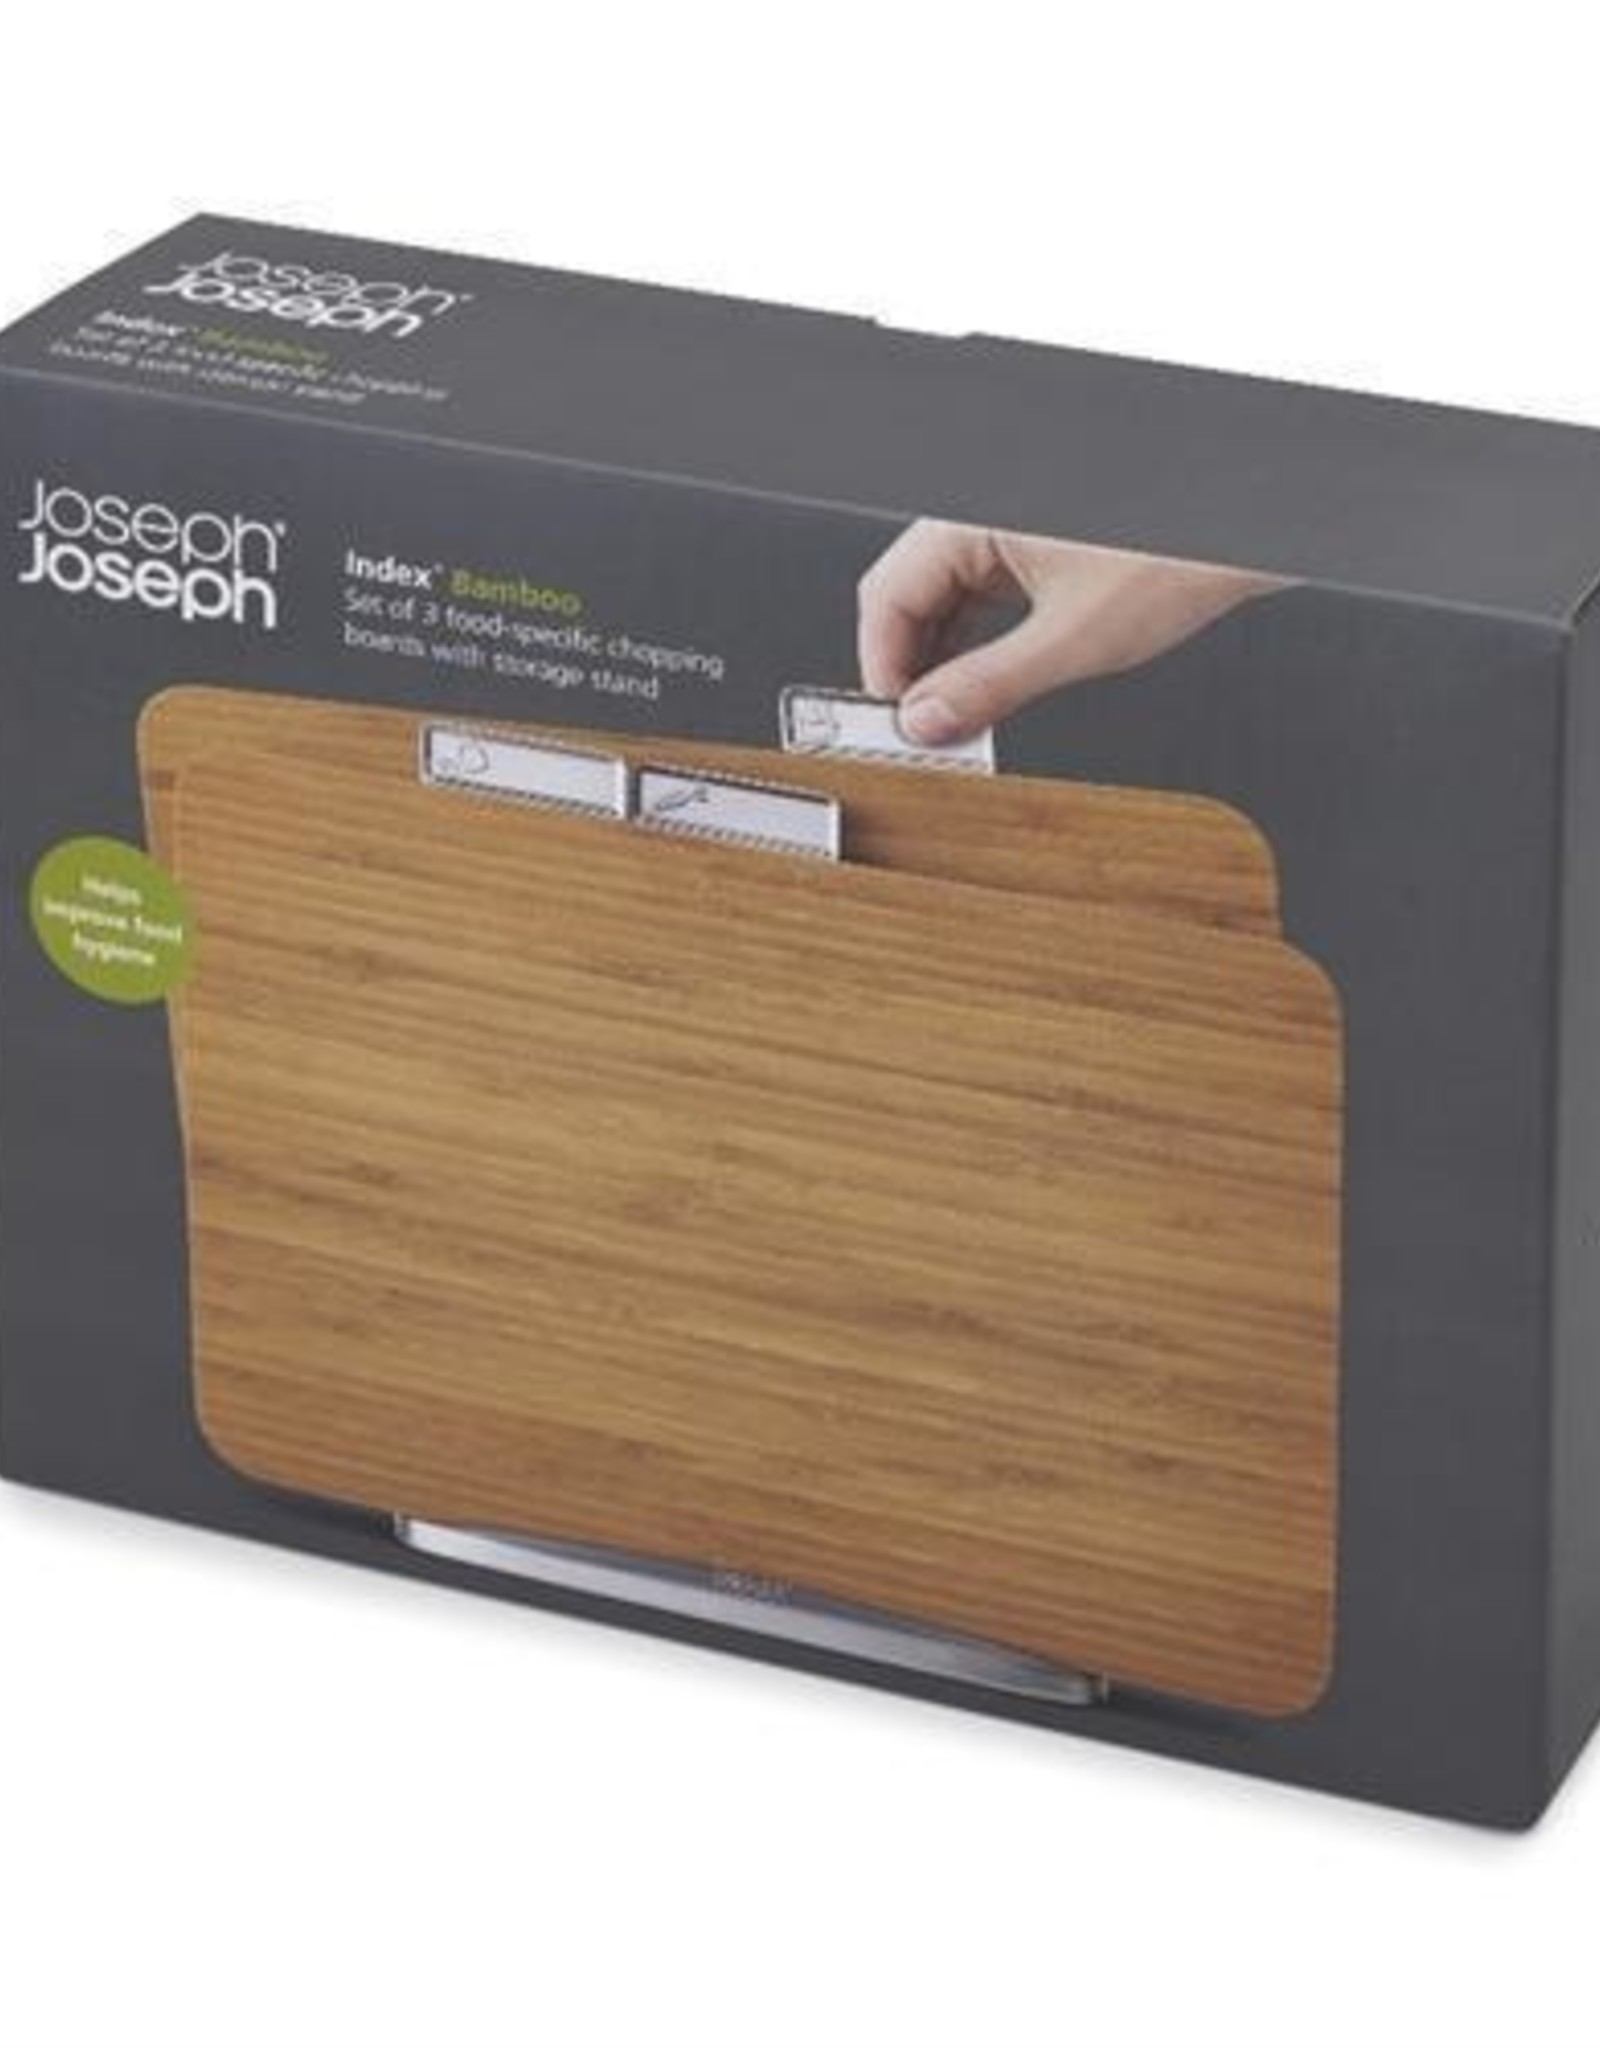 Joseph Joseph Index Bamboo Chopping Board Set